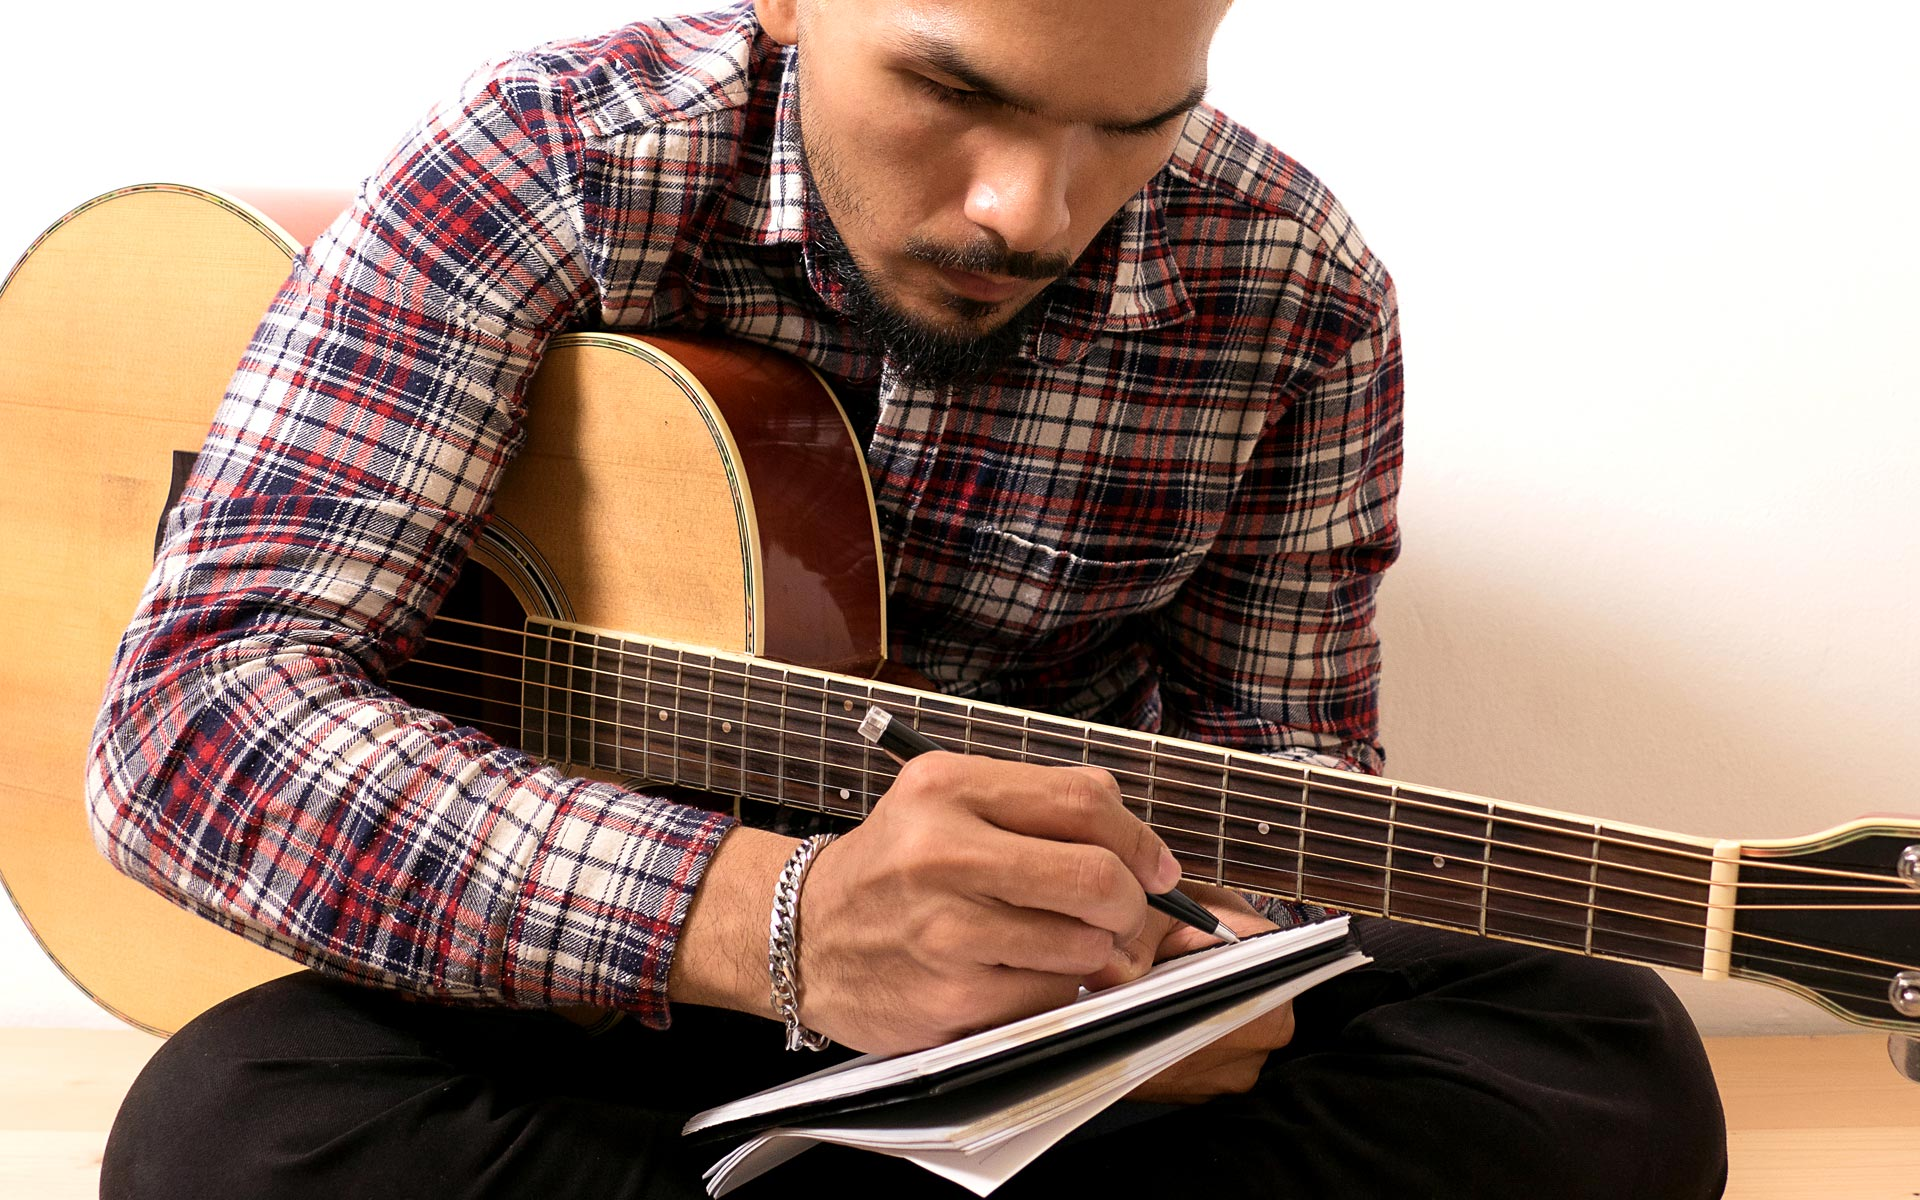 Man with a guitar writing a protest song.